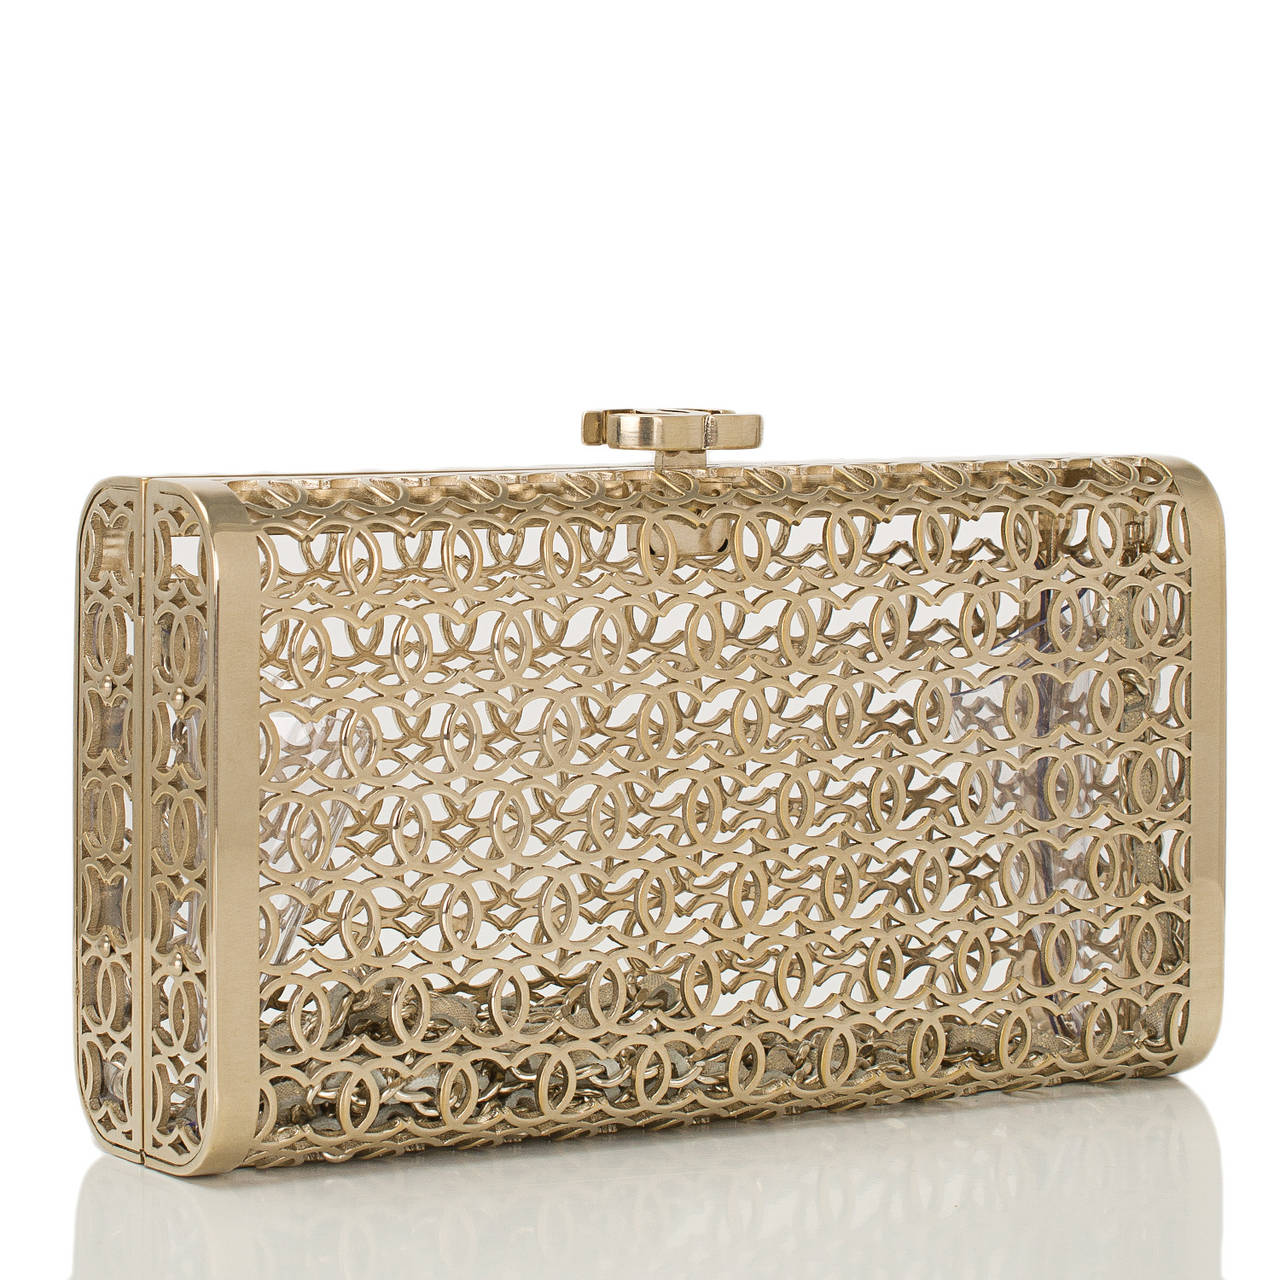 Chanel limited edition runway gold metal Moucharabieh minaudière with gold tone hardware.  This style features light gold metal CC latticework with top signature CC push clasp closure and an interwoven light gold tone chain link and light gold